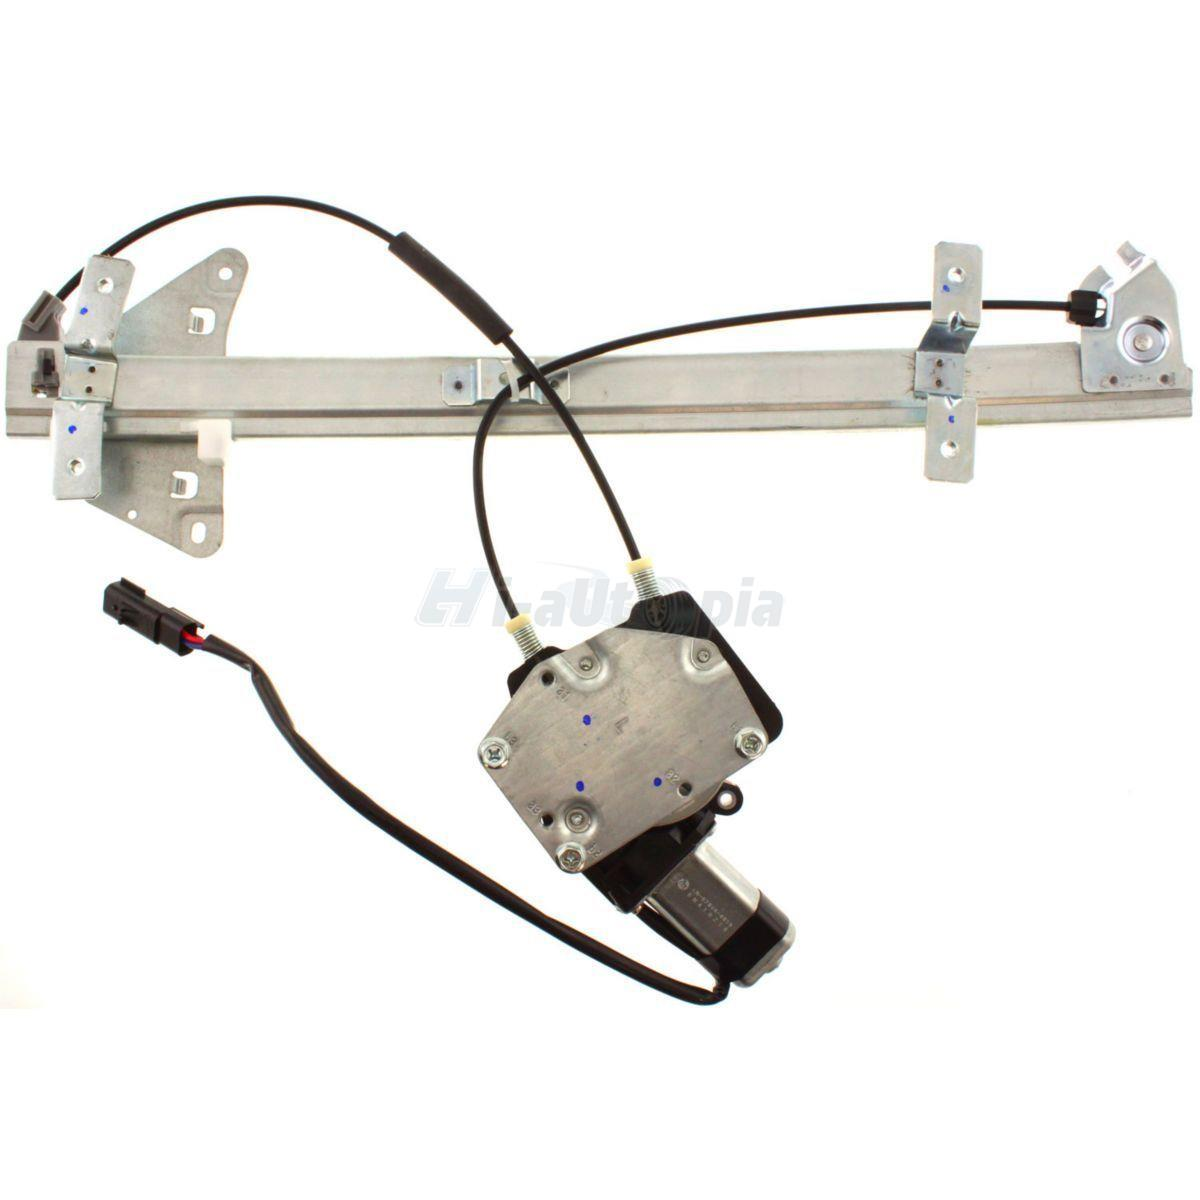 Power window regulator w motor front driver side for dodge for 2002 dodge dakota window regulator